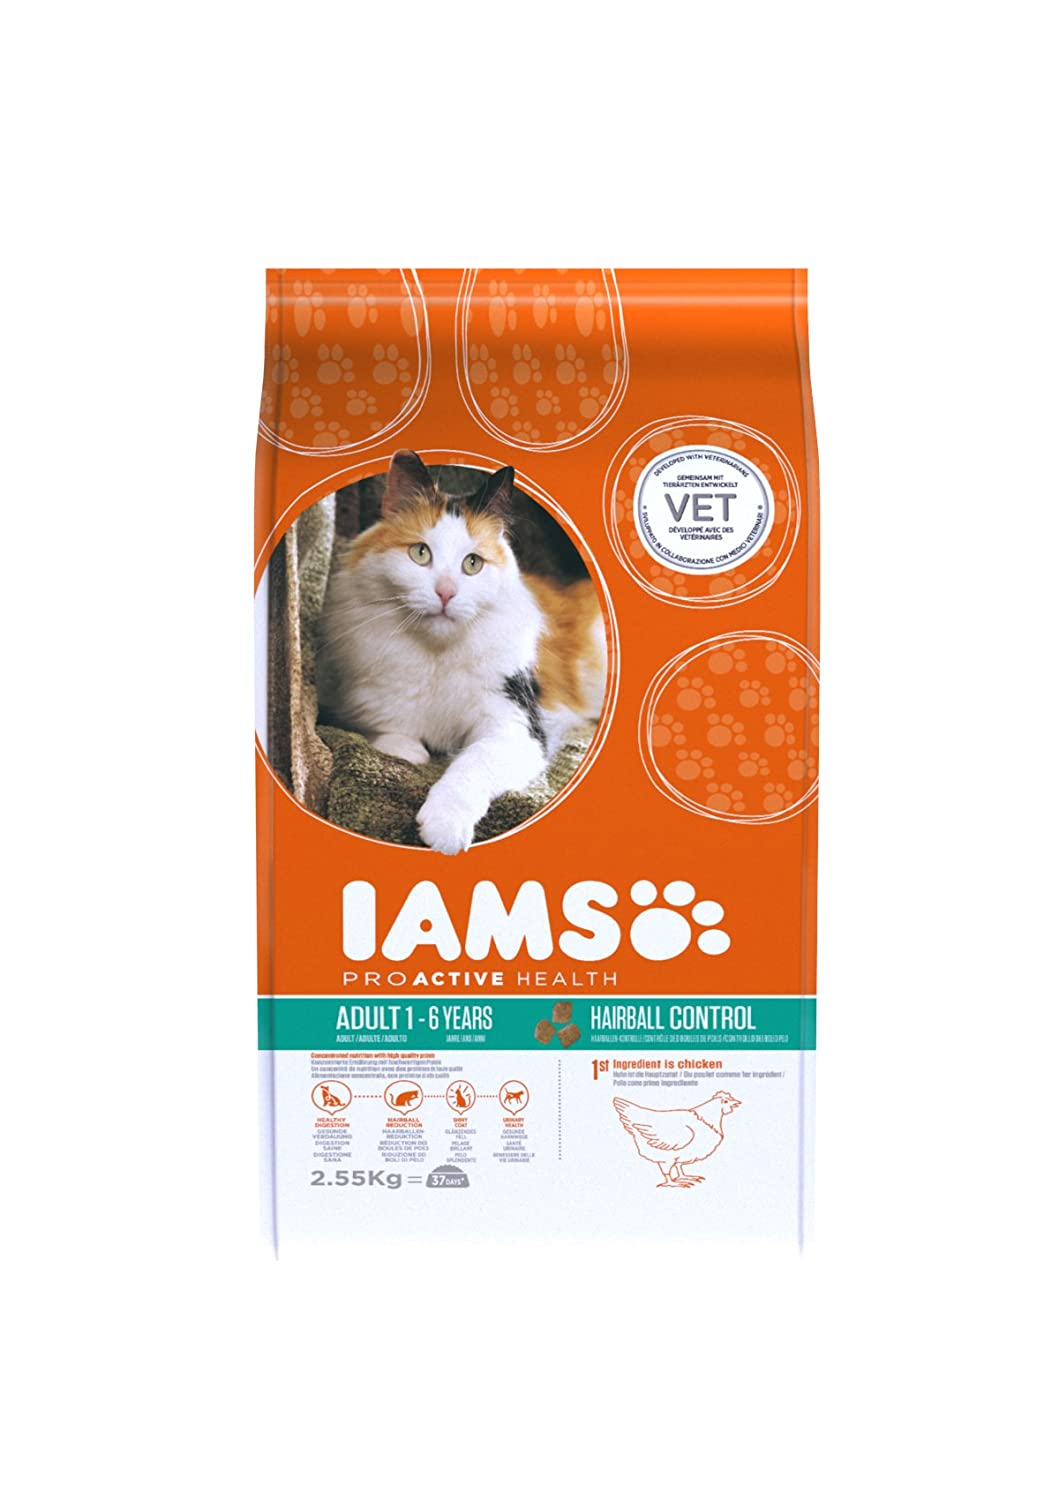 Amazon.com : Iams Cat Food Adult Hairball Control Succulent Roast Chicken 2.55kg 2550g : Pet Supplies